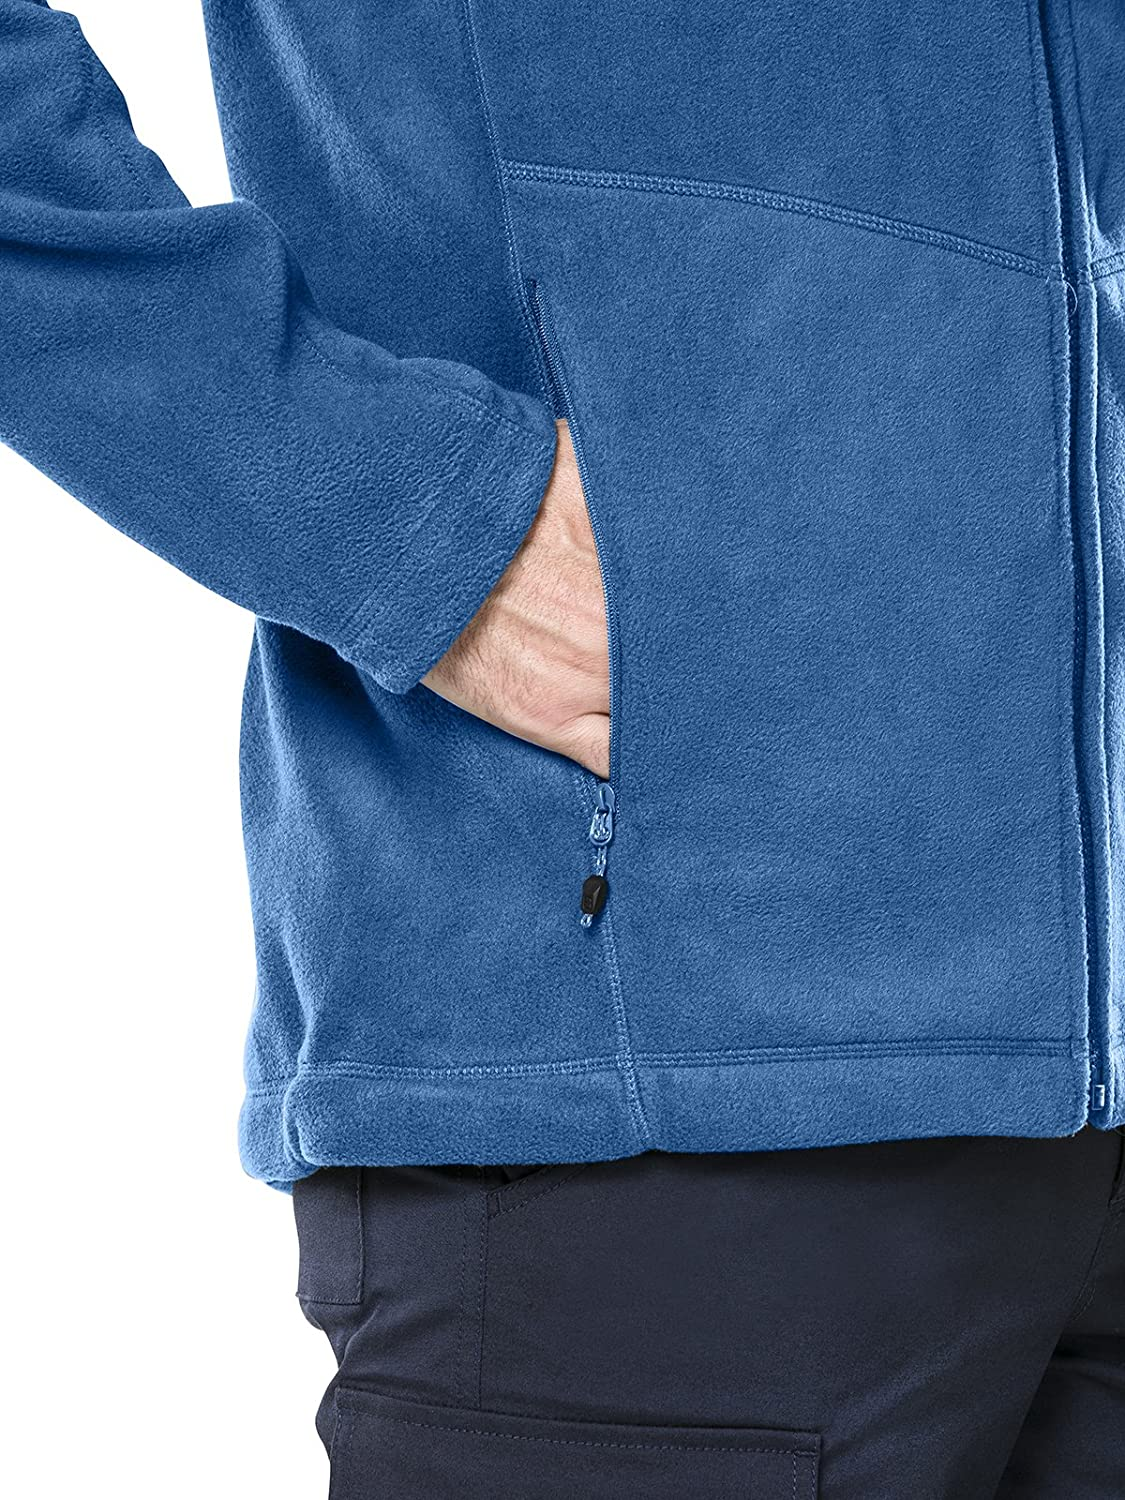 Berghaus Prism 2.0 Mens Outdoor Fleece Jacket available in